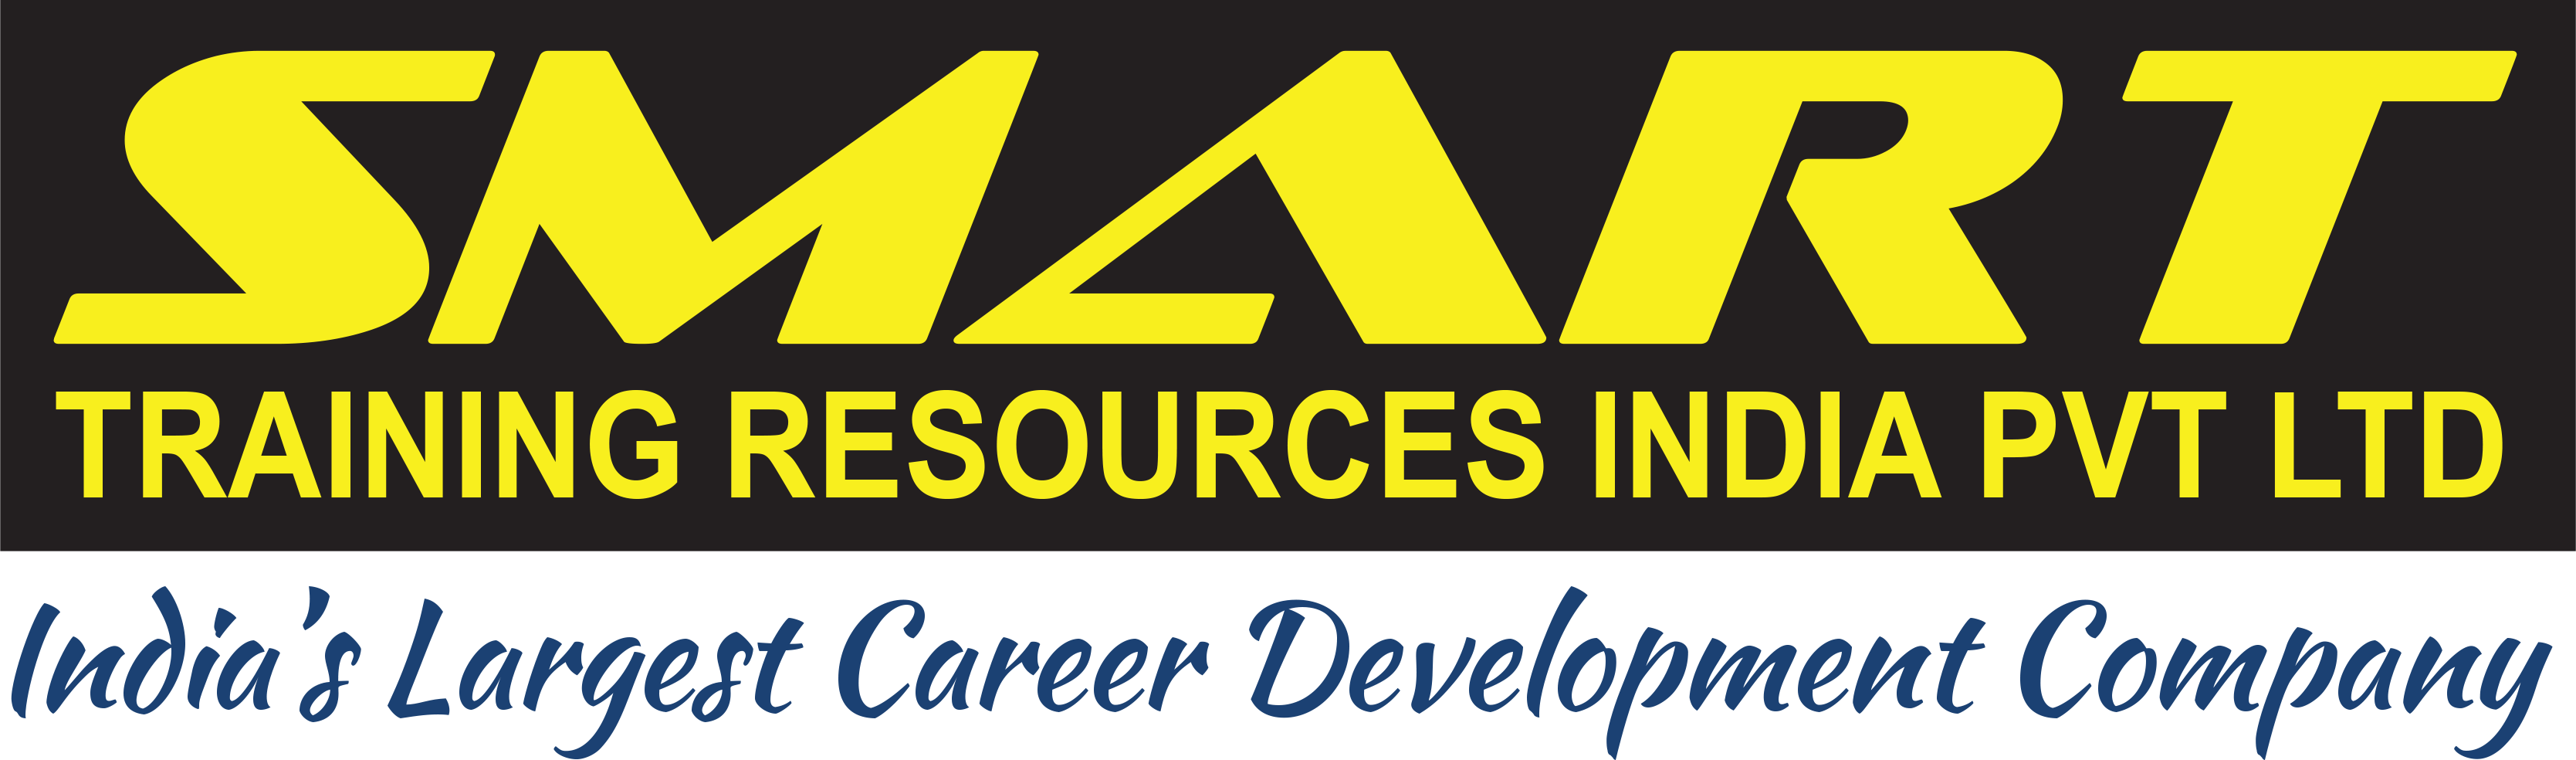 SMART Training Resources (I) Pvt Ltd